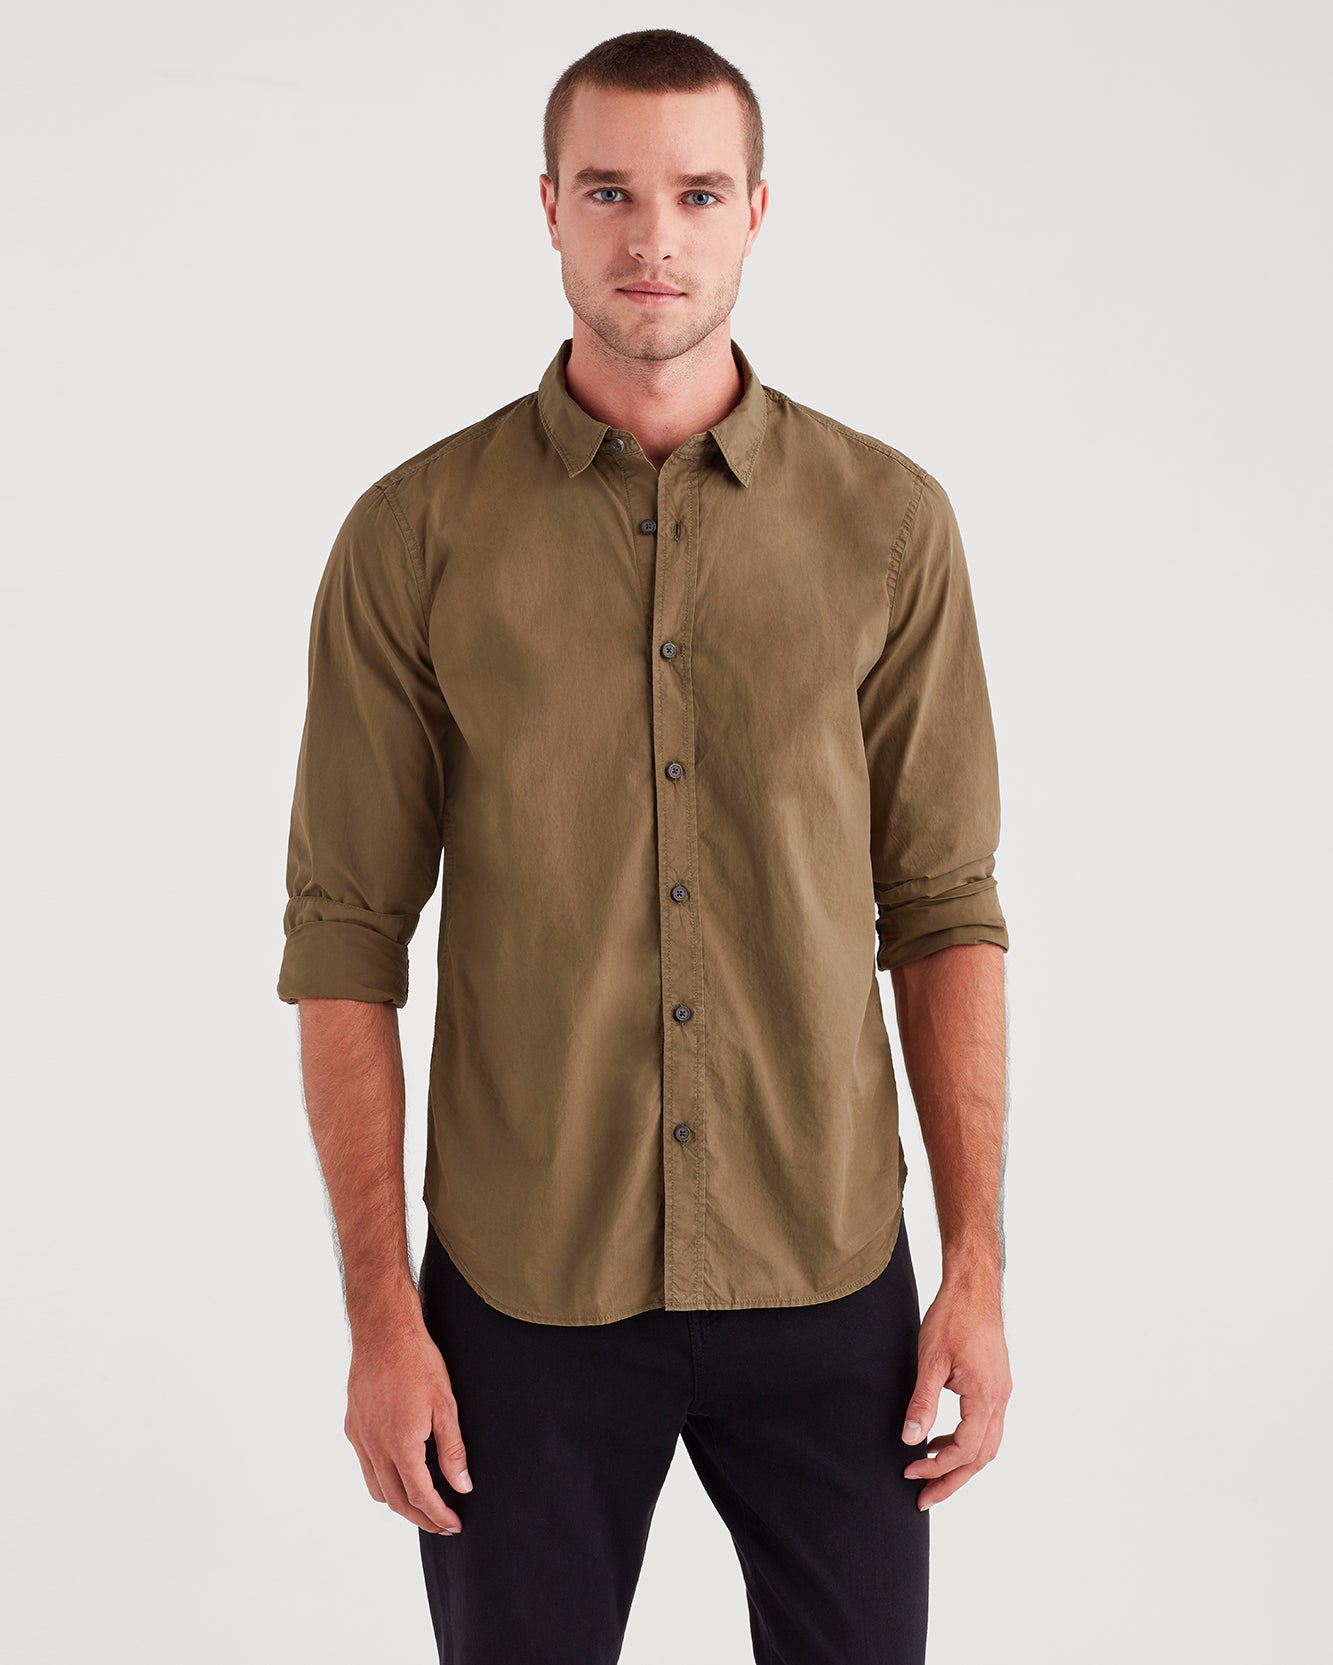 Image of Long Sleeve Poplin Shirt in Military Olive